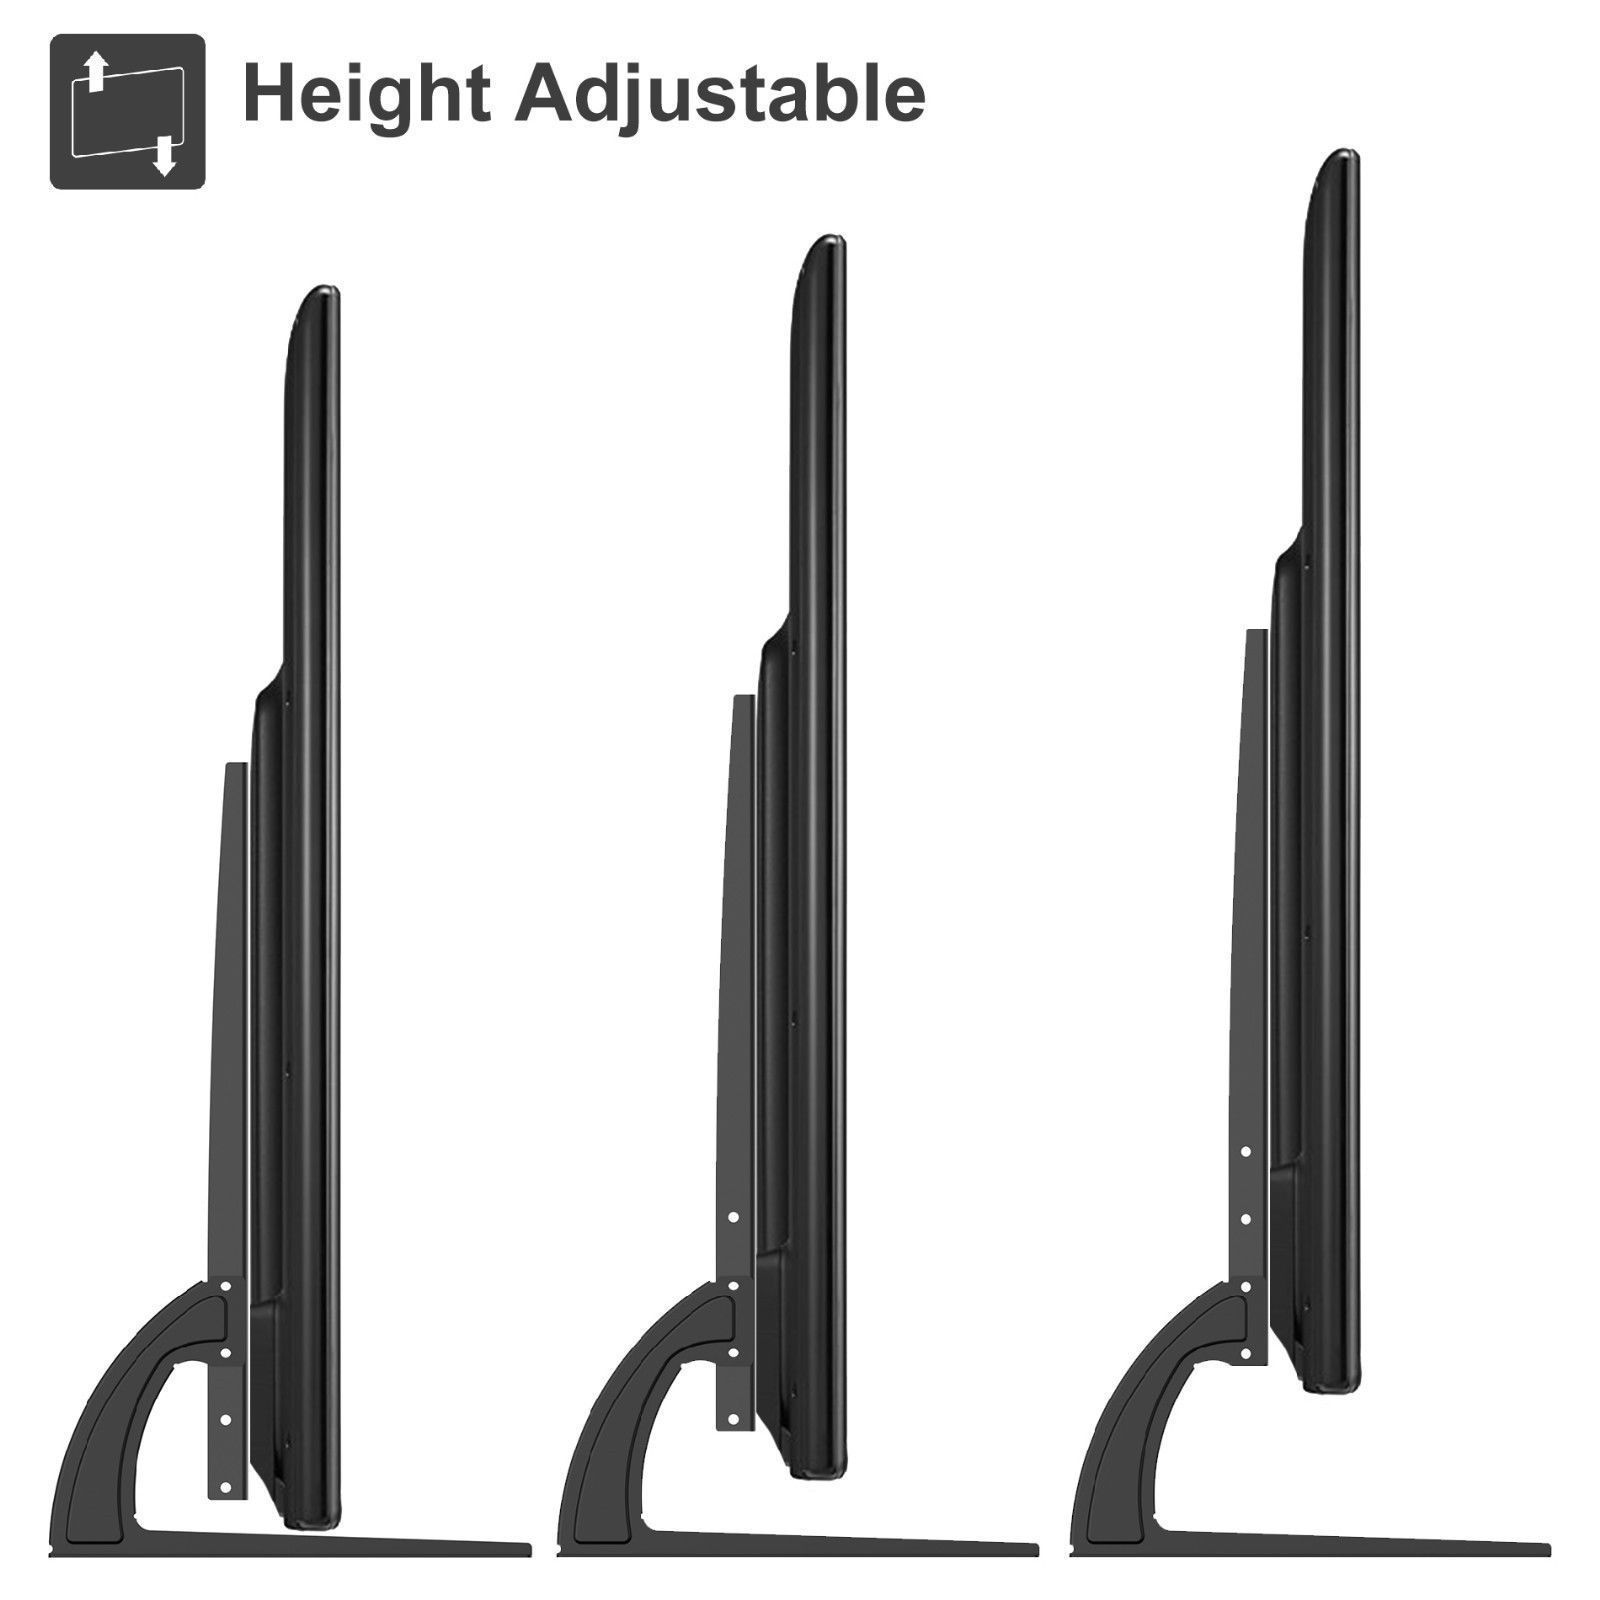 Universal Table Top TV Stand Legs for Vizio E50-C1 Height Adjustable